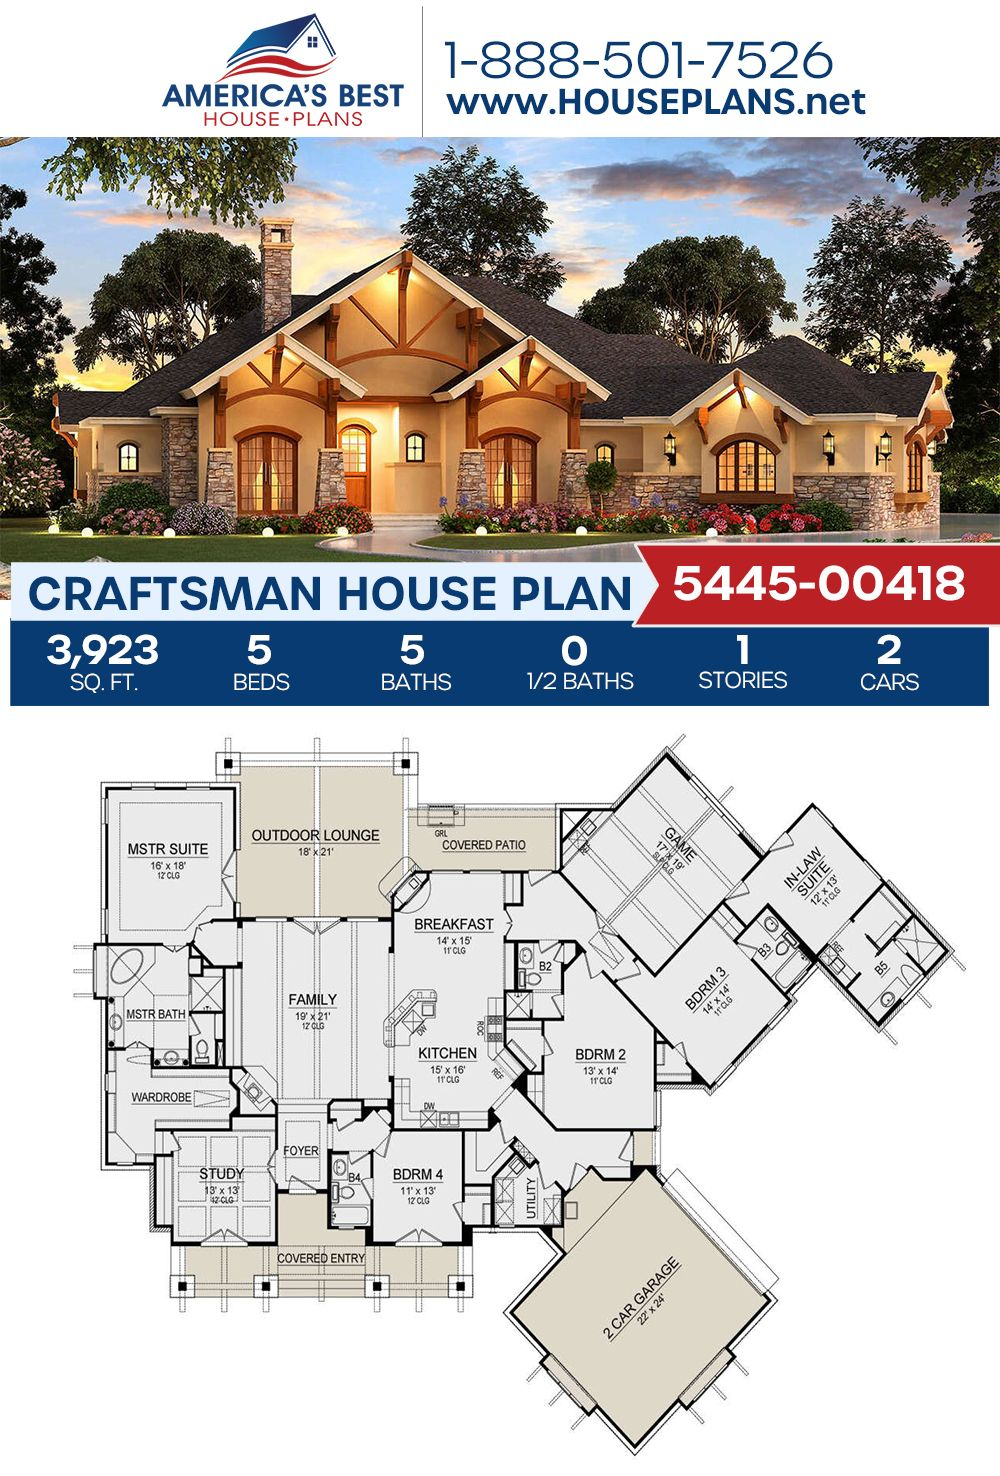 House Plan 5445 00418 Craftsman Plan 3 923 Square Feet 5 Bedrooms 5 Bathrooms In 2020 One Level House Plans Multigenerational House Plans Craftsman House Plans